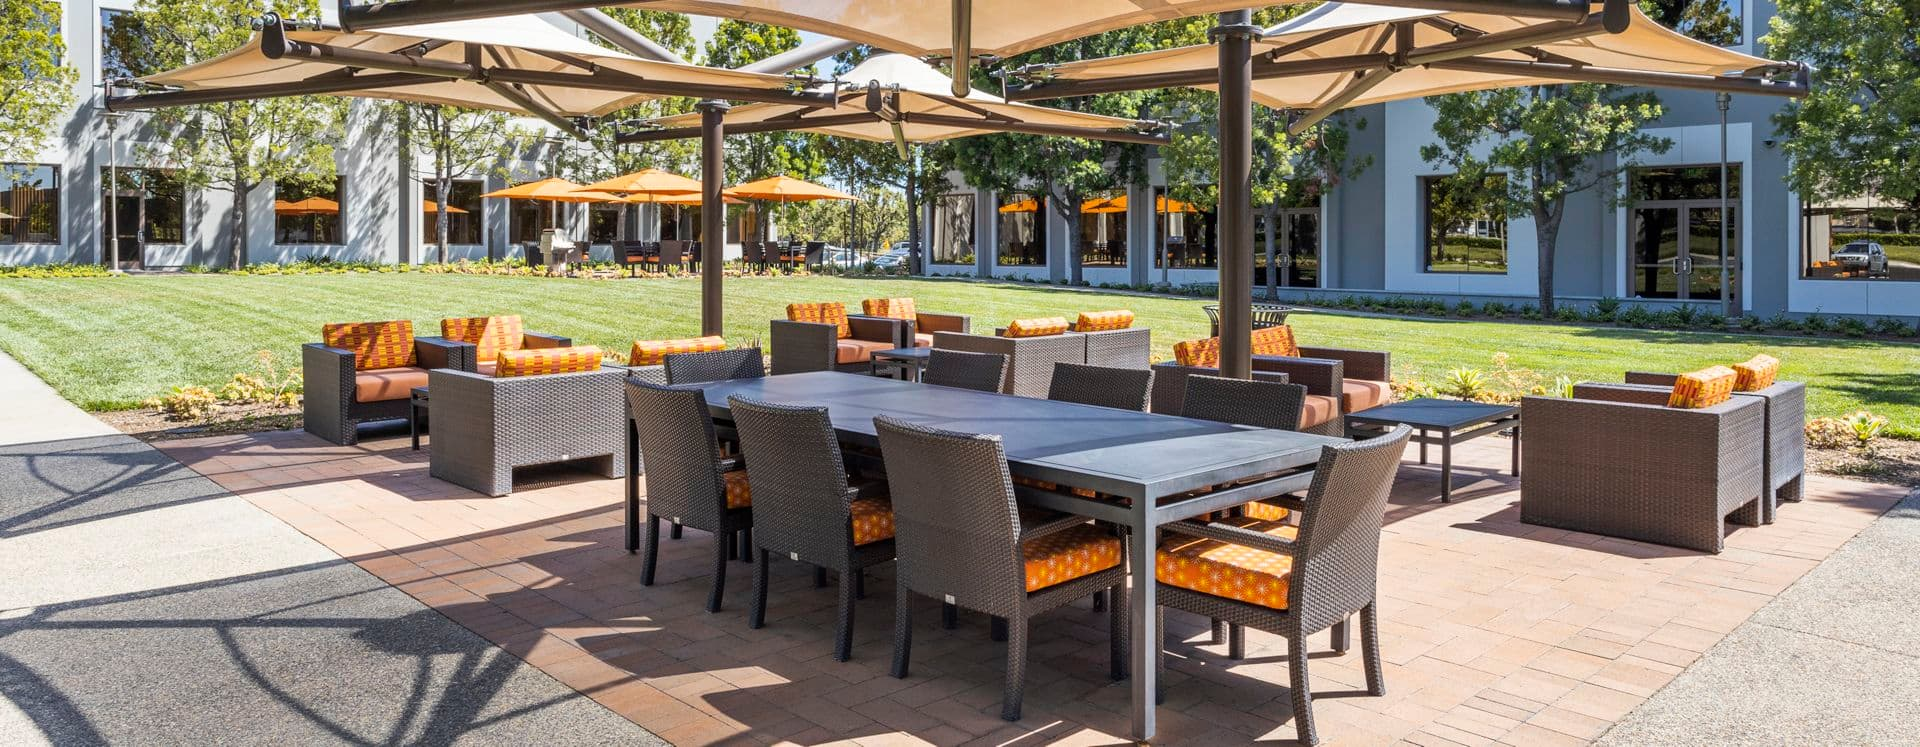 Exterior view of seating area in The Commons at 410 Exchange at Market Place Center in Irvine, CA.